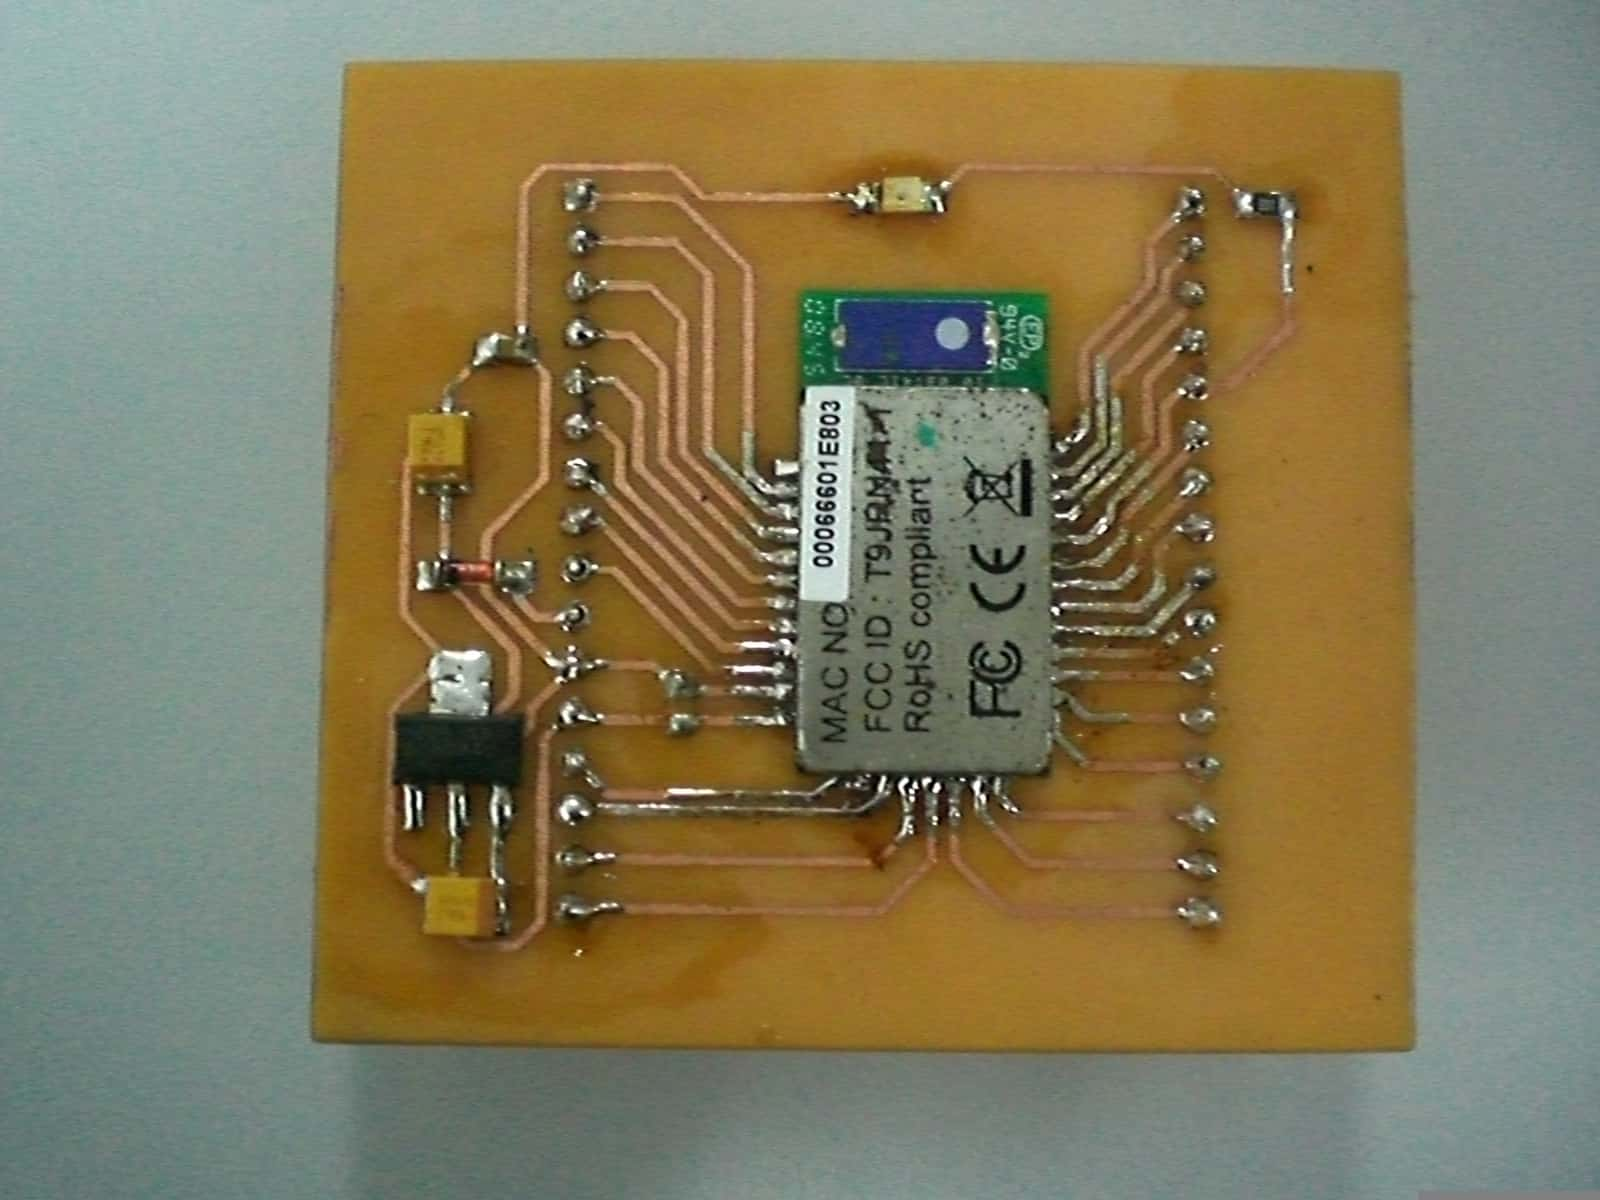 Fabricate Your Own PCB at Home – Tutorial by Cytron